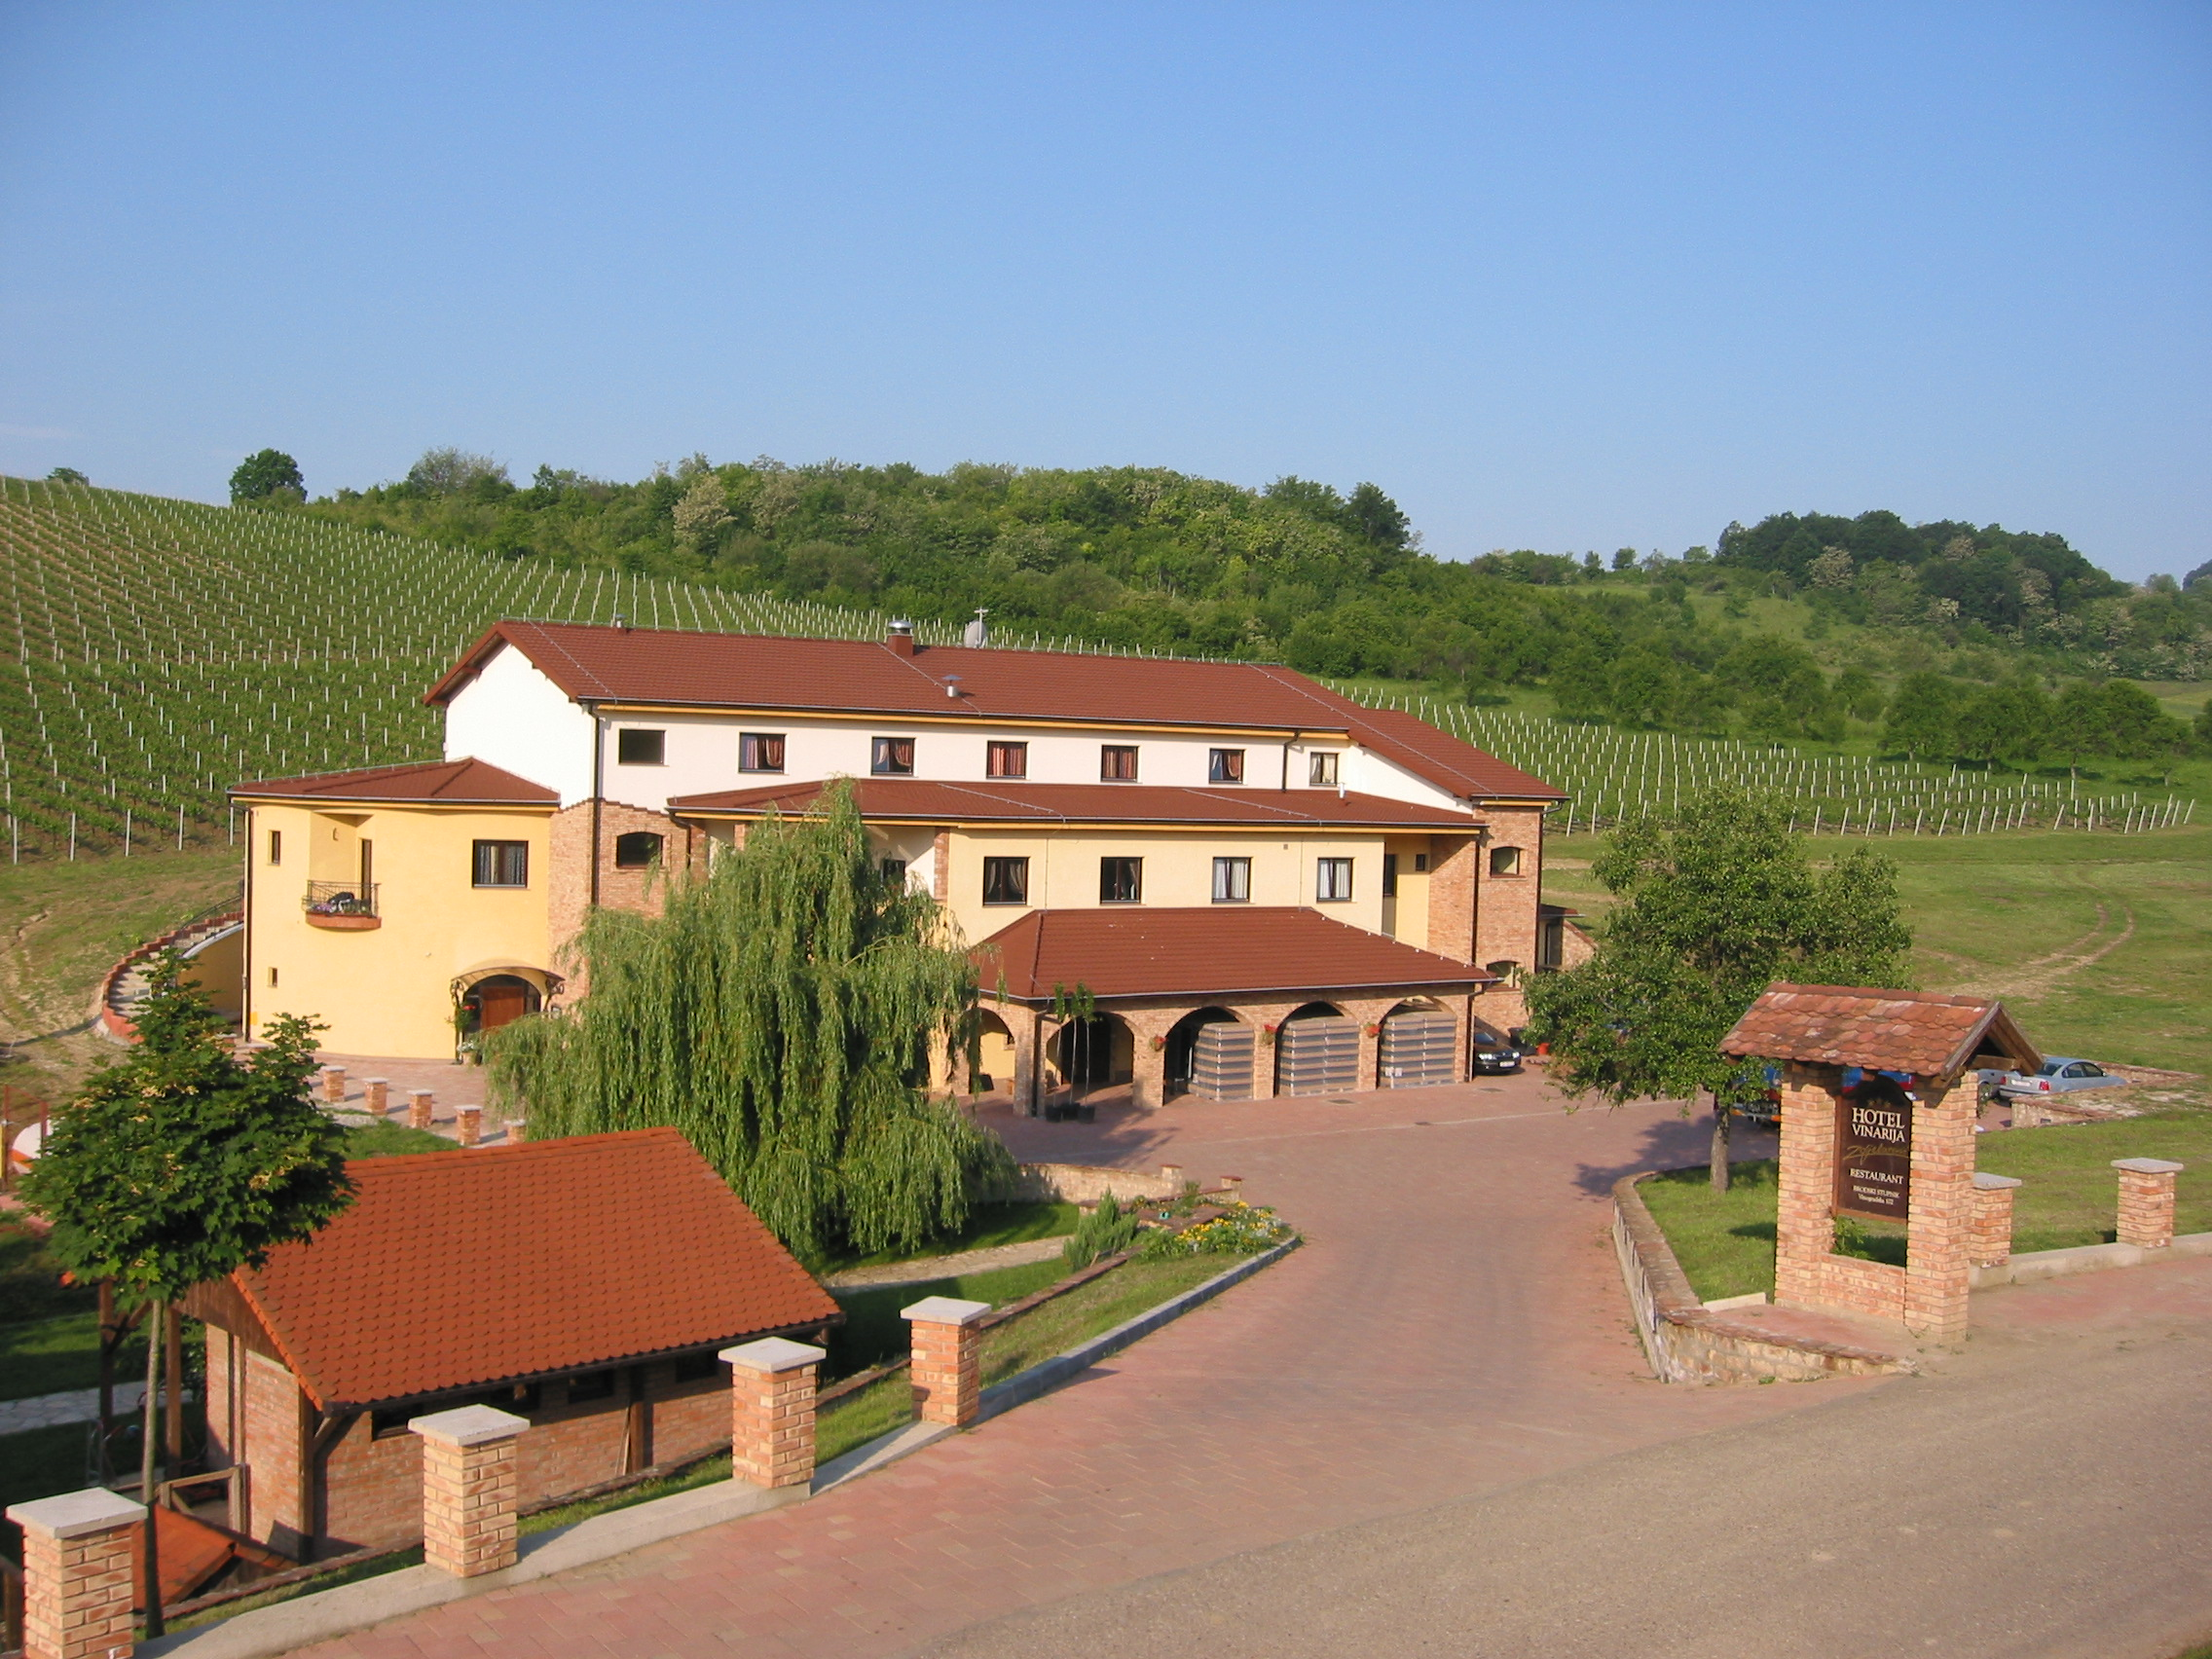 ‪Zdjelarevic Hotel & Winery‬